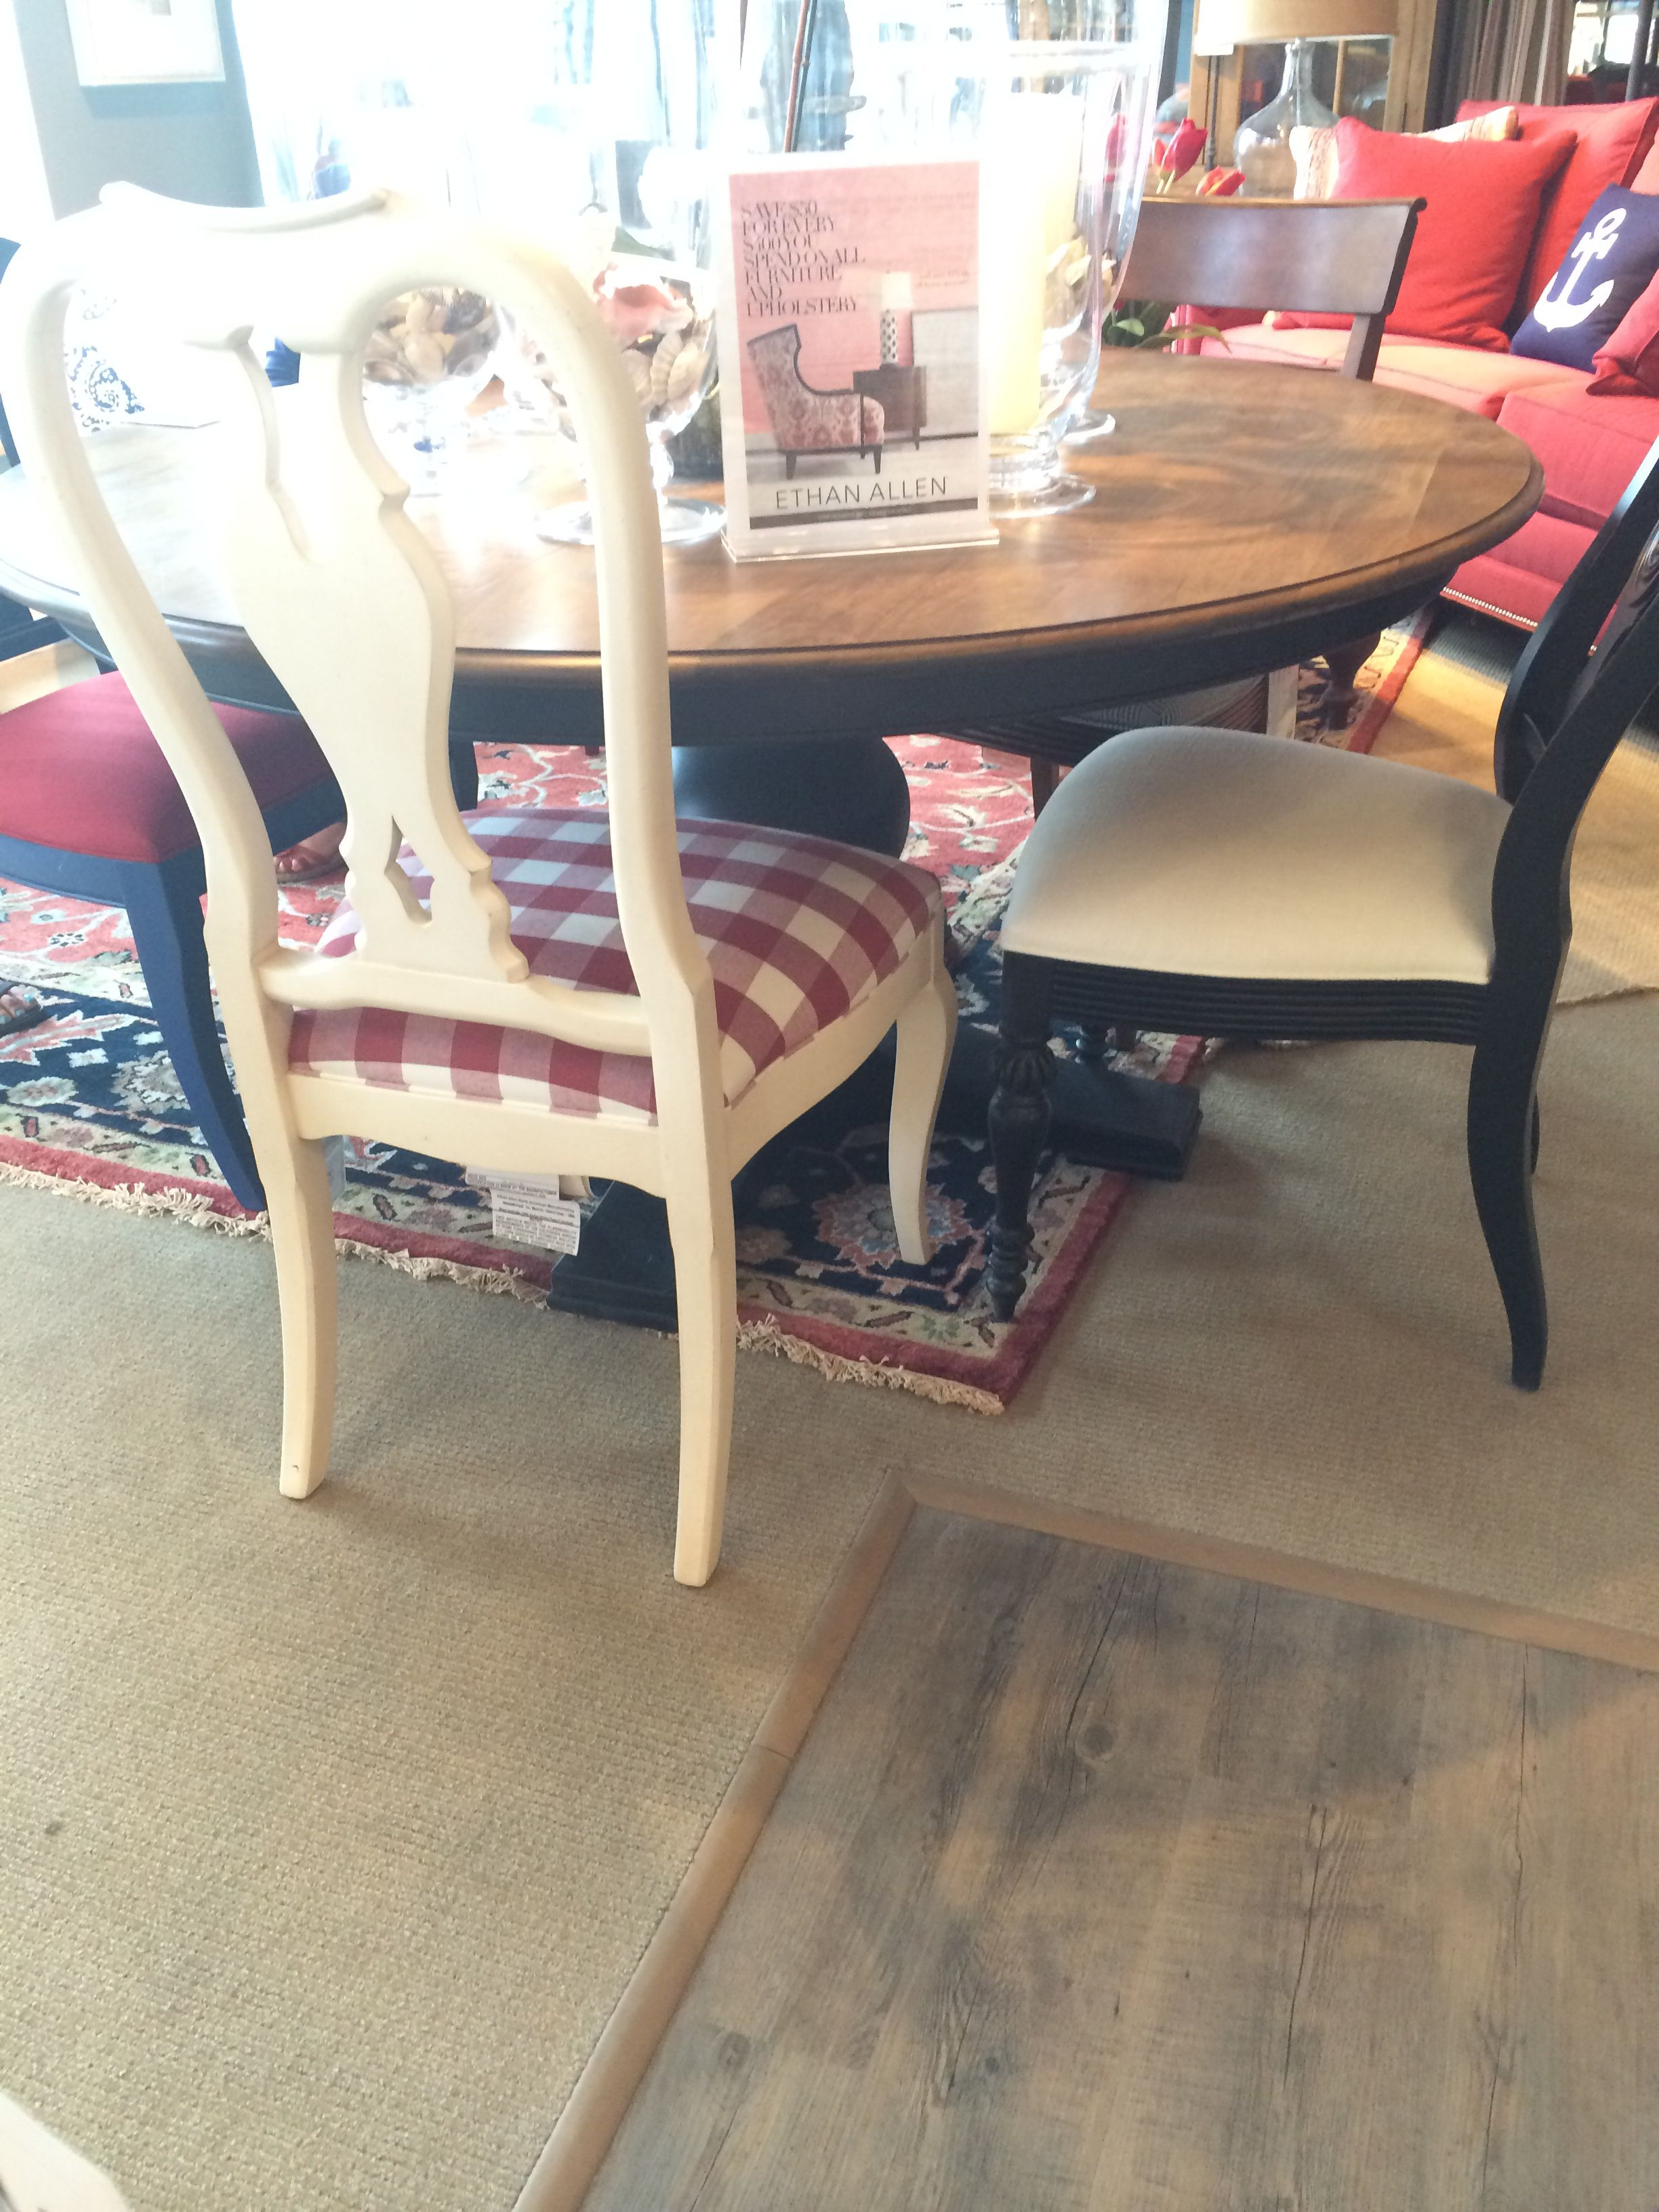 Dining table ethan allen in painted in grey with navy chairs